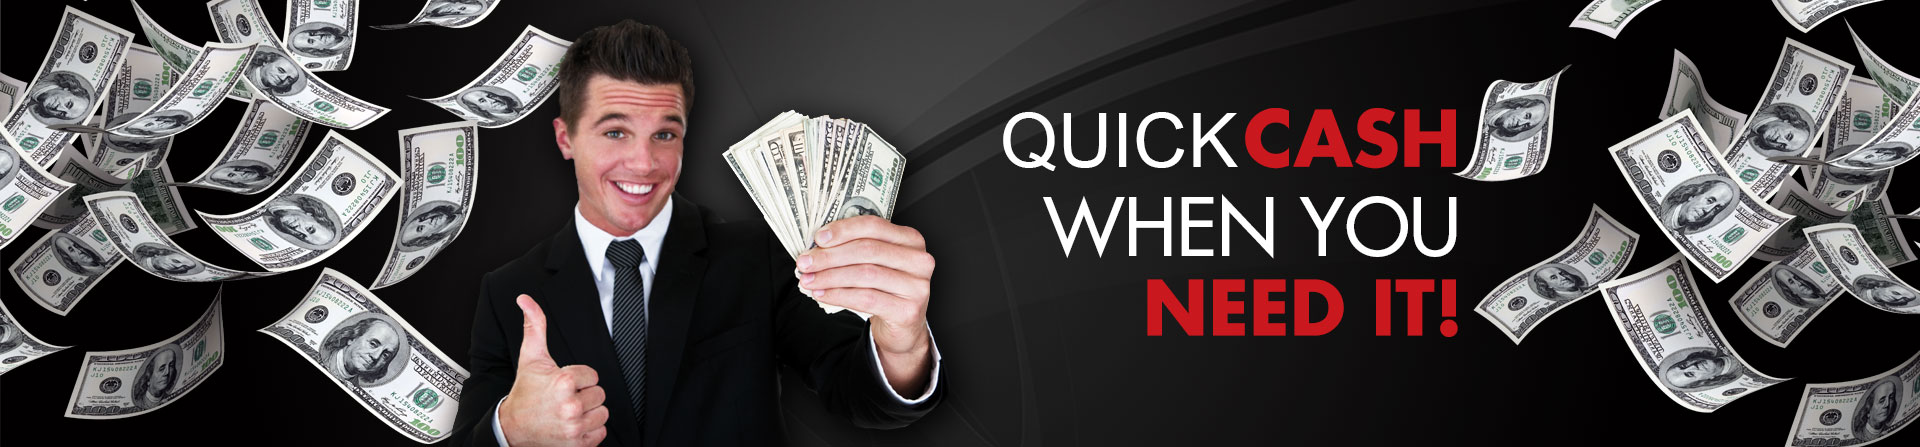 QUICK CASH WHEN YOU NEED IT!